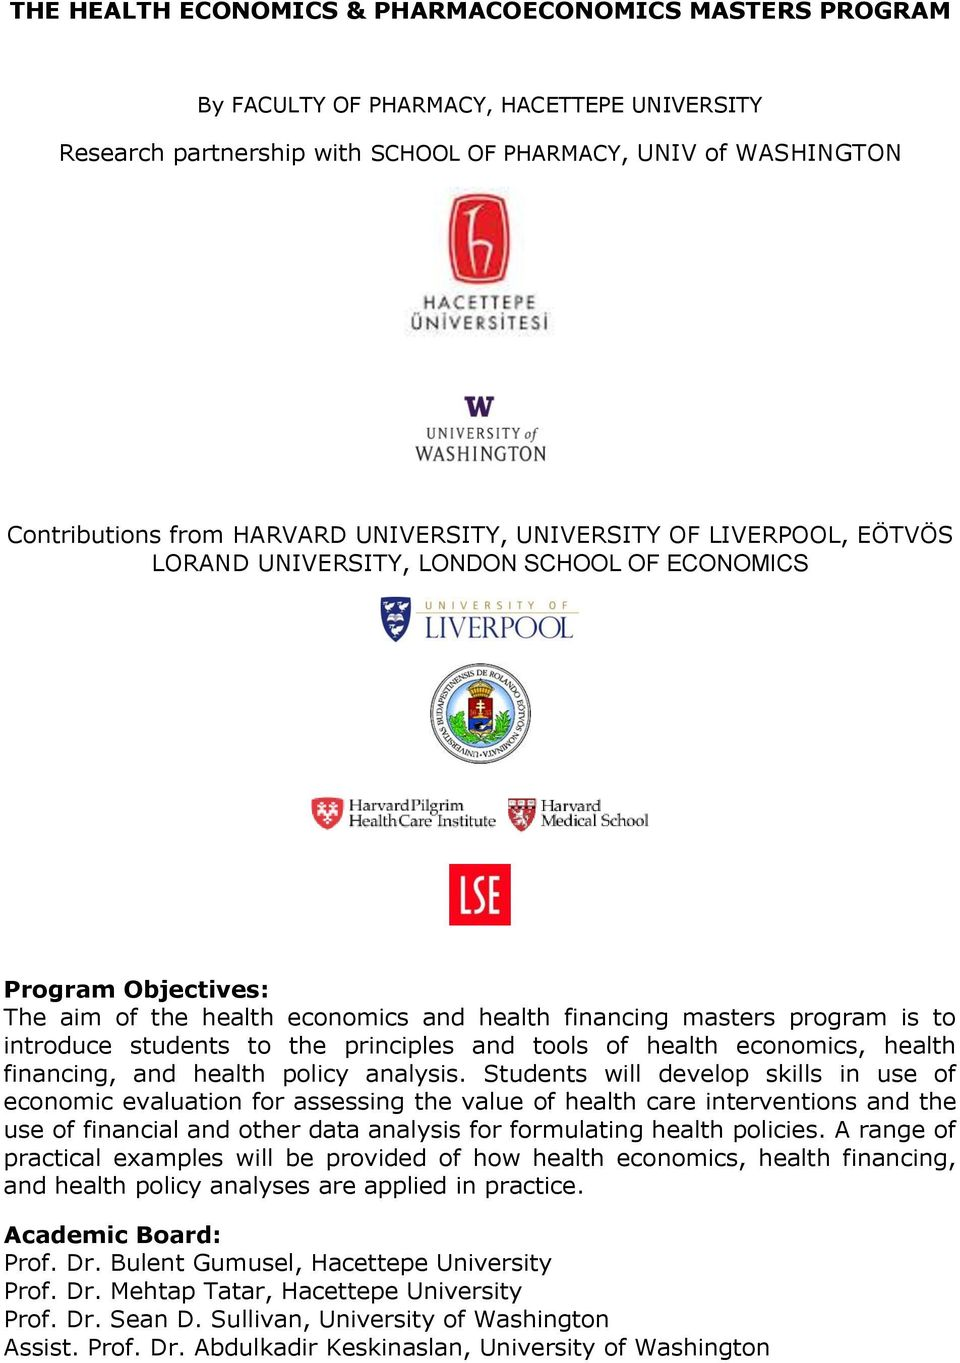 students to the principles and tools of health economics, health financing, and health policy analysis.